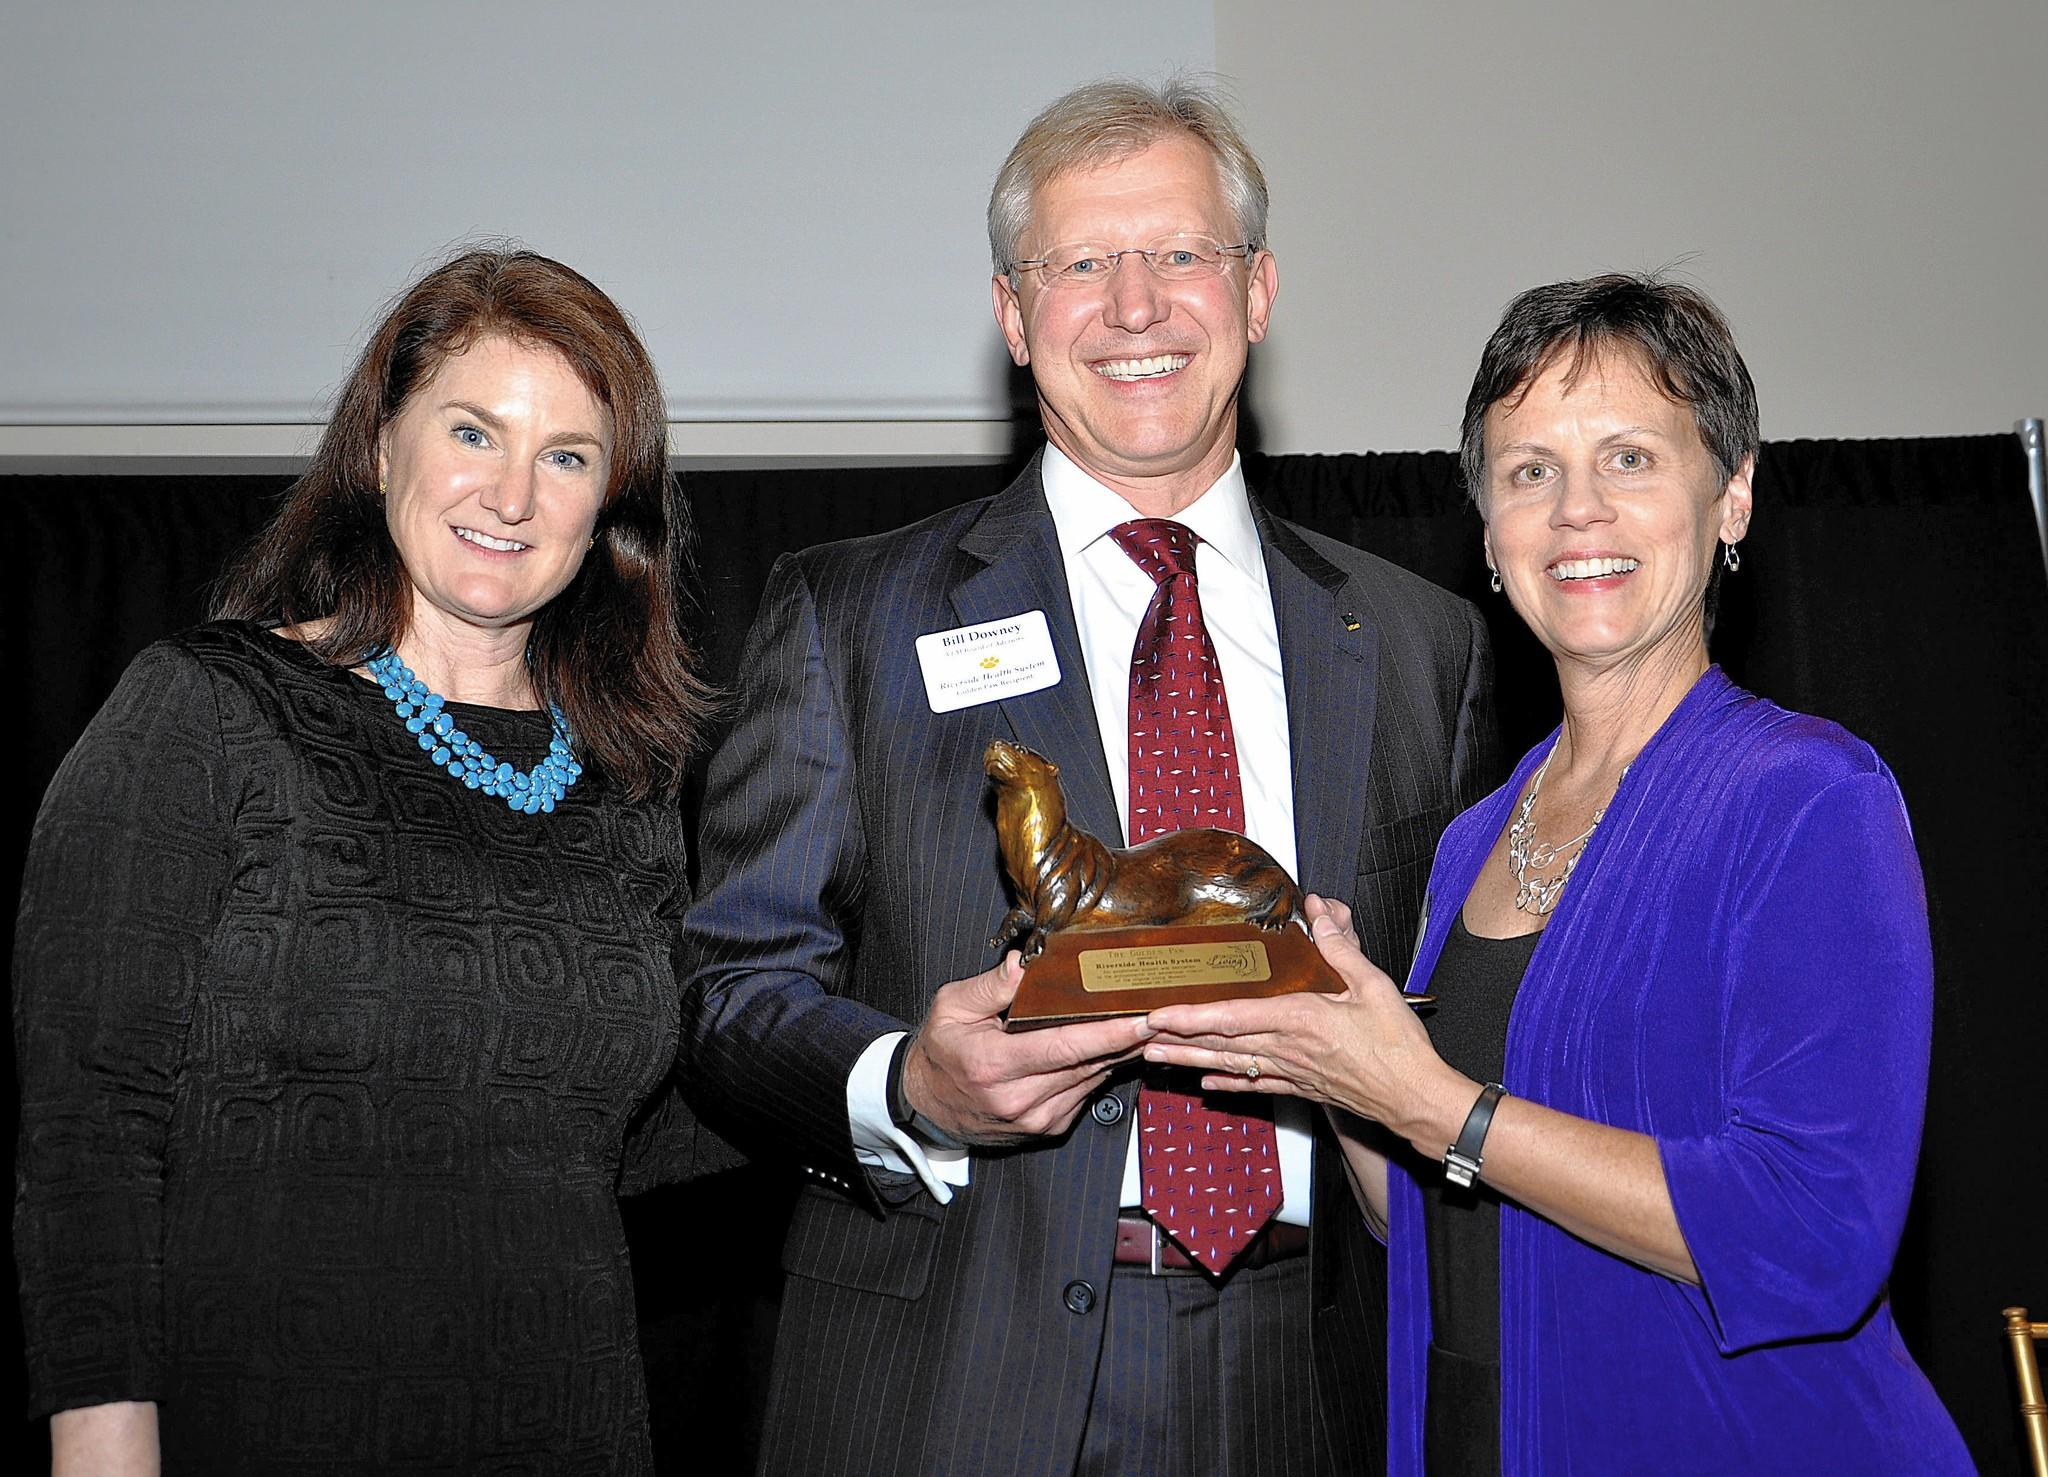 Virginia Living Museum presents Golden Paw Award to Riverside Health System Sept. 24, 2014 L to R: Page Hayhurst, Virginia Living Museum executive director; Bill Downey, CEO Riverside Health System; Kathy Howell, president Virginia Living Museum Board of Trustees. No Mags, No Sales, No Internet, No TV